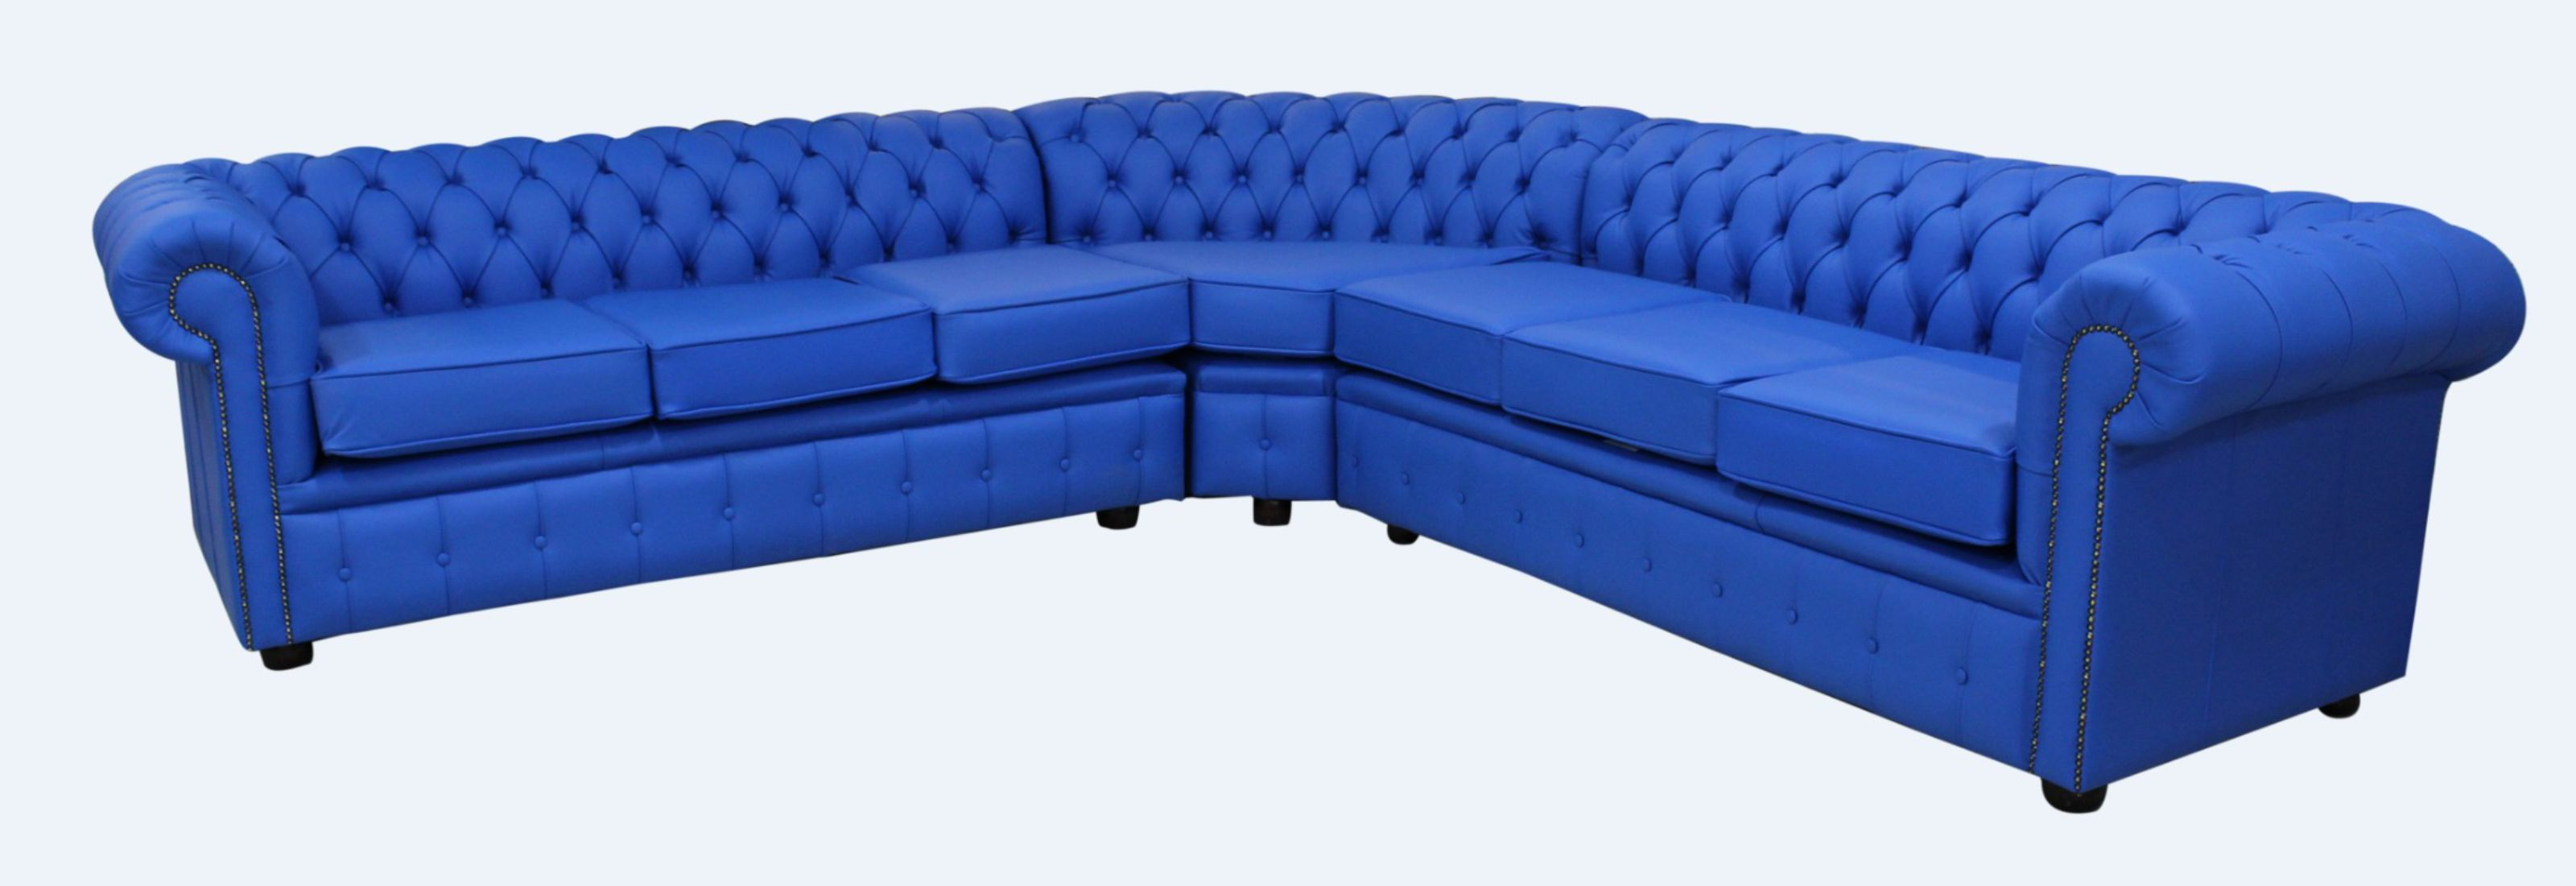 Amazing Chesterfield Corner Sofa Unit 7 Seater Deep Ultramarine Blue Leather Cushioned Ibusinesslaw Wood Chair Design Ideas Ibusinesslaworg